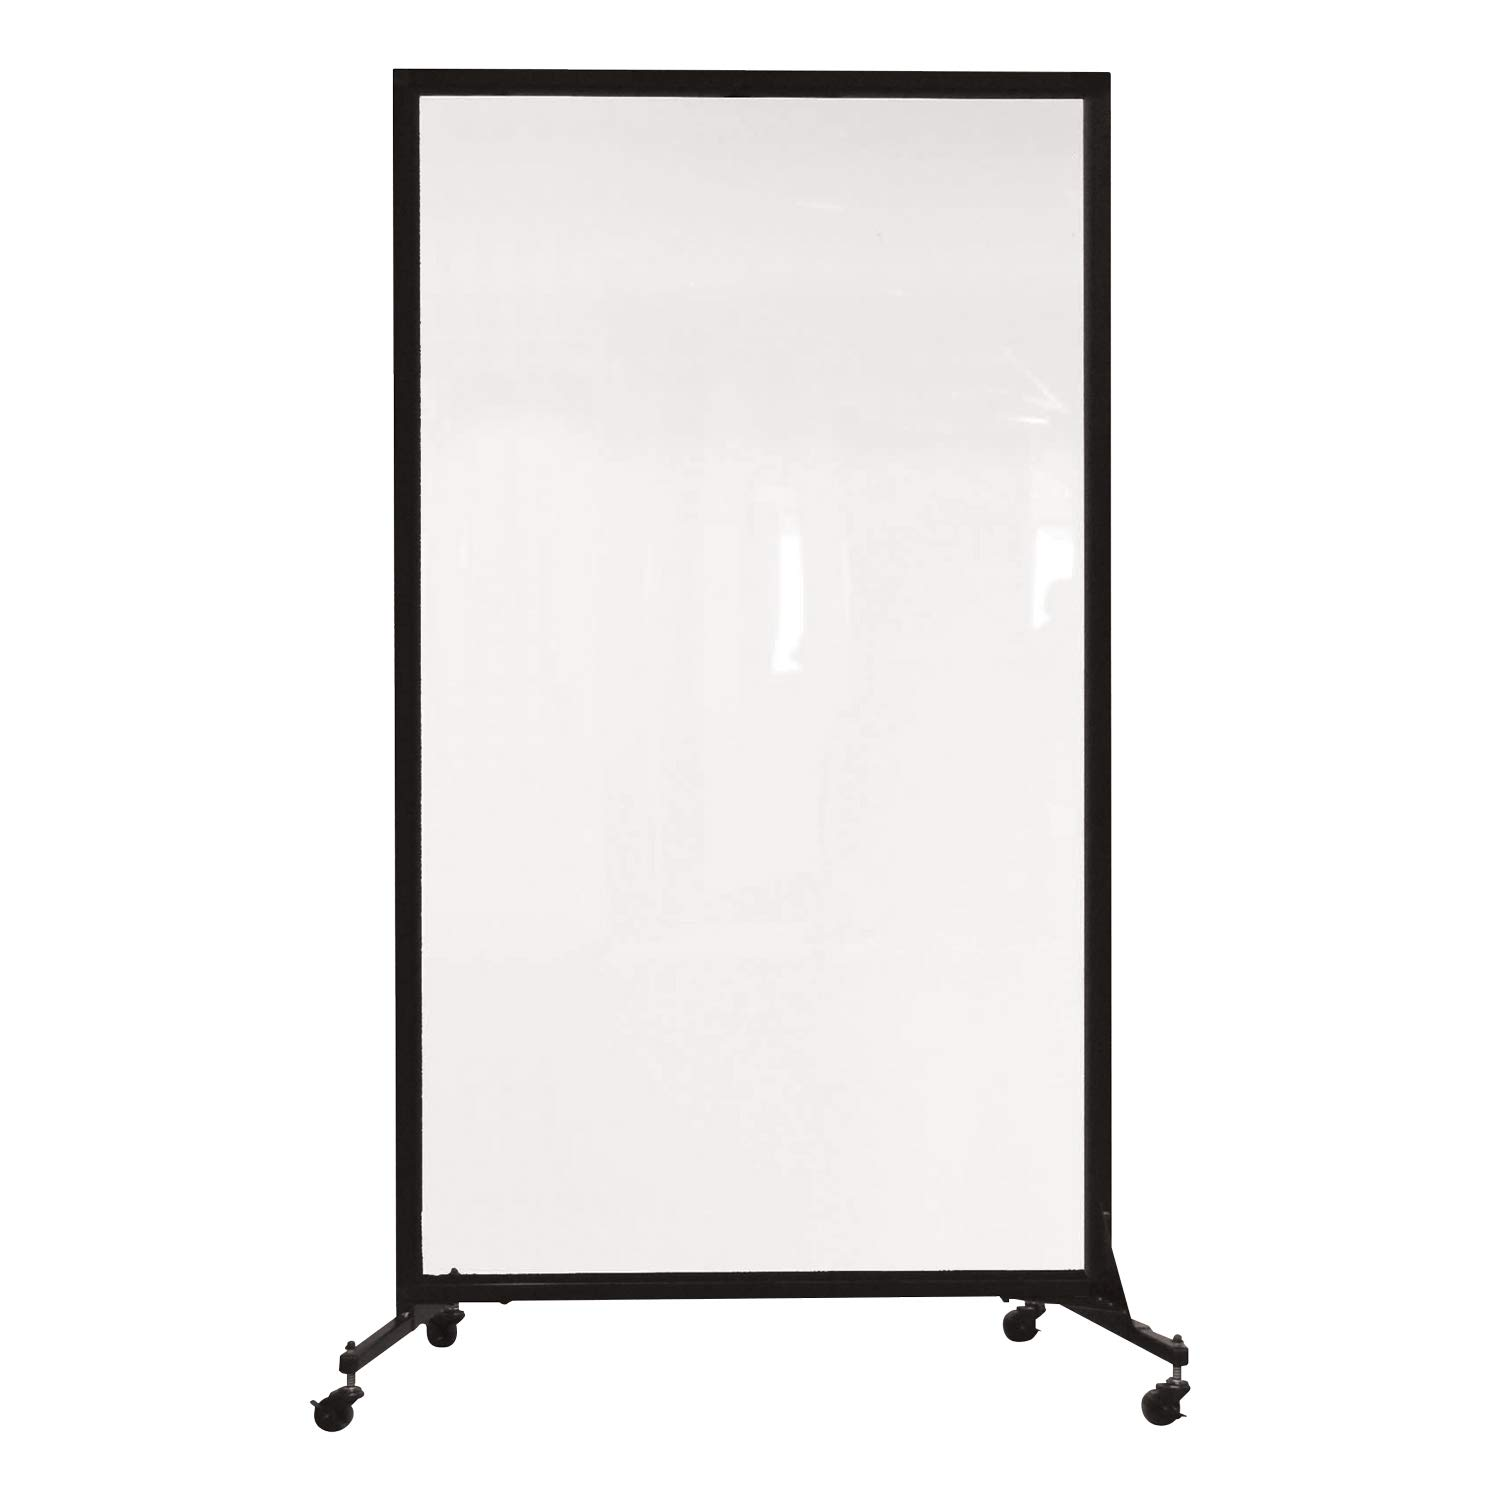 "Norwood Commercial Furniture Healthy Safeguard Clear Portable Room Divider/Privacy Screen 6' 2"" H- One Panel (3' 4"" L) for Medical Facilities, Schools, Airports, Athletic Facilities"